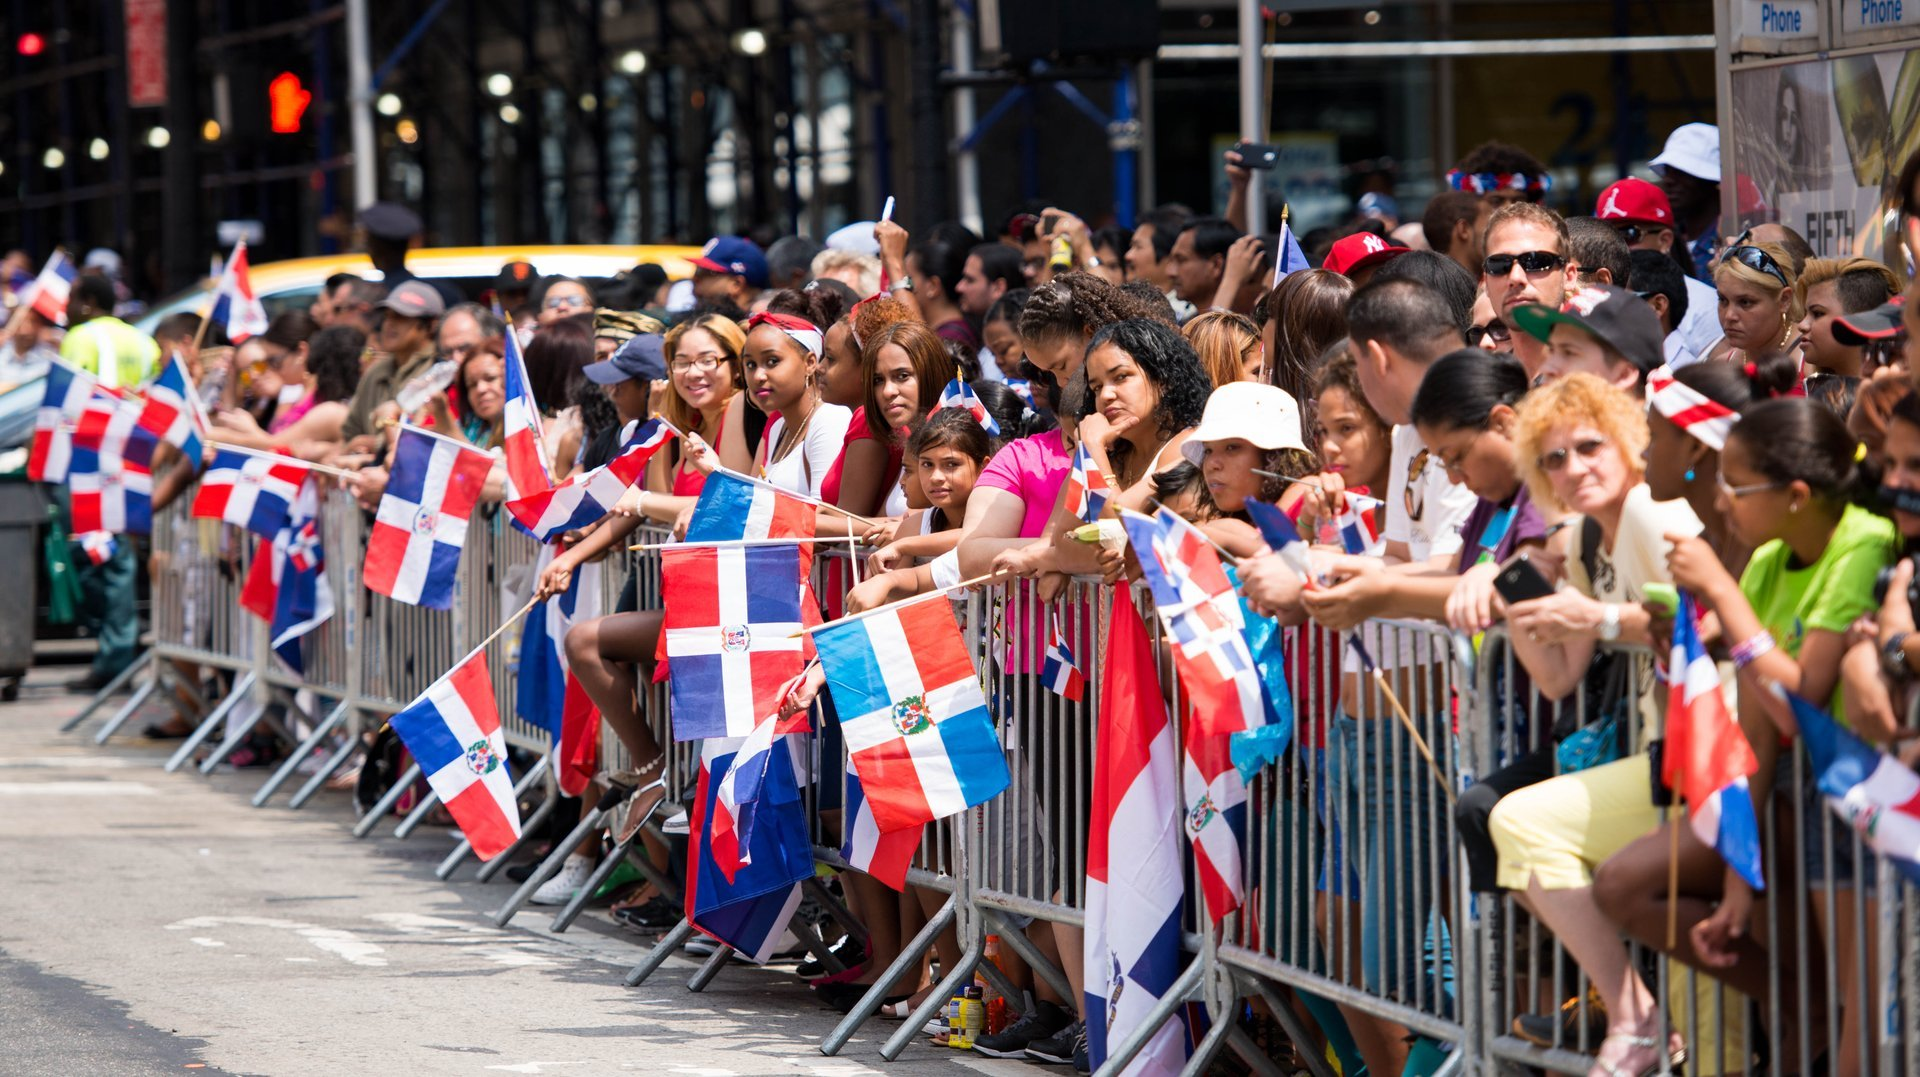 Dominican Day Parade in New York 2020 - Best Time